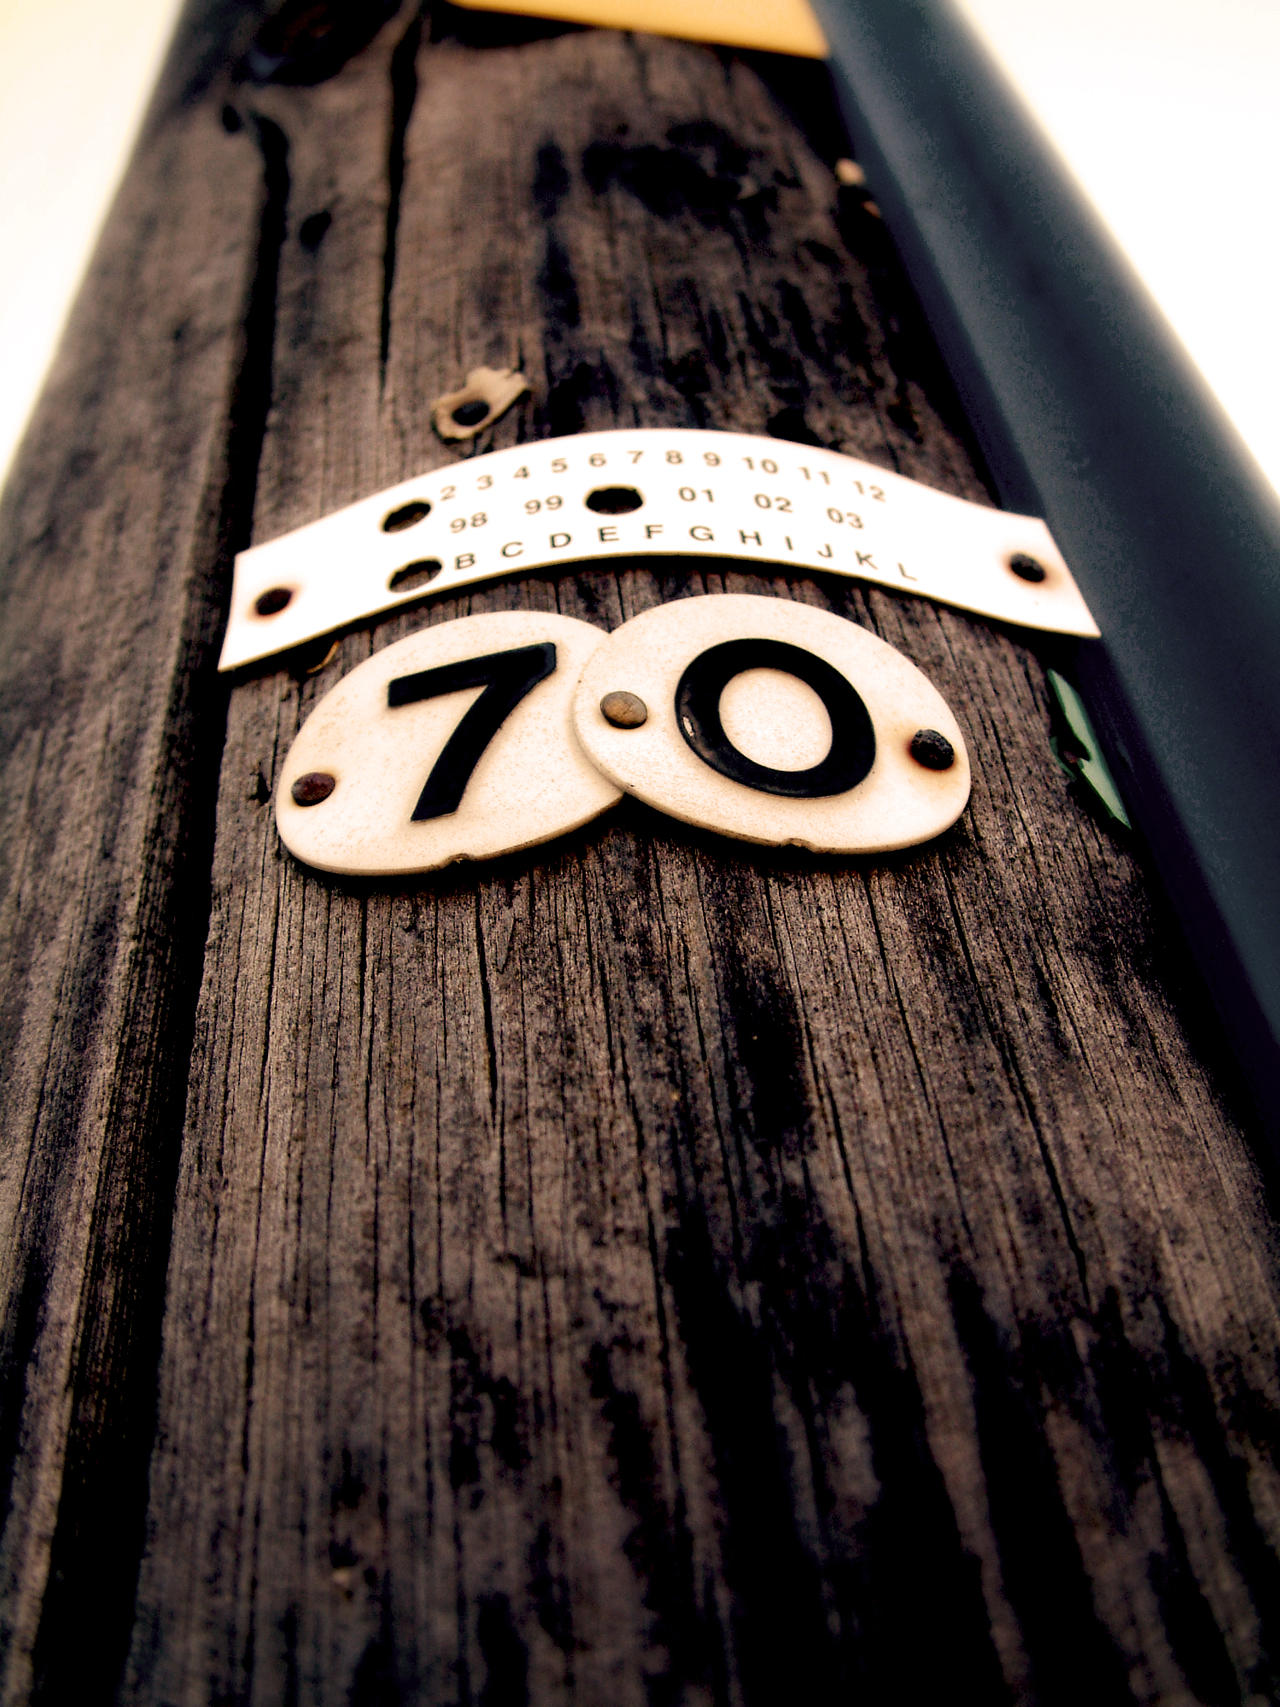 The Number 70 By Maxdicapua On Deviantart